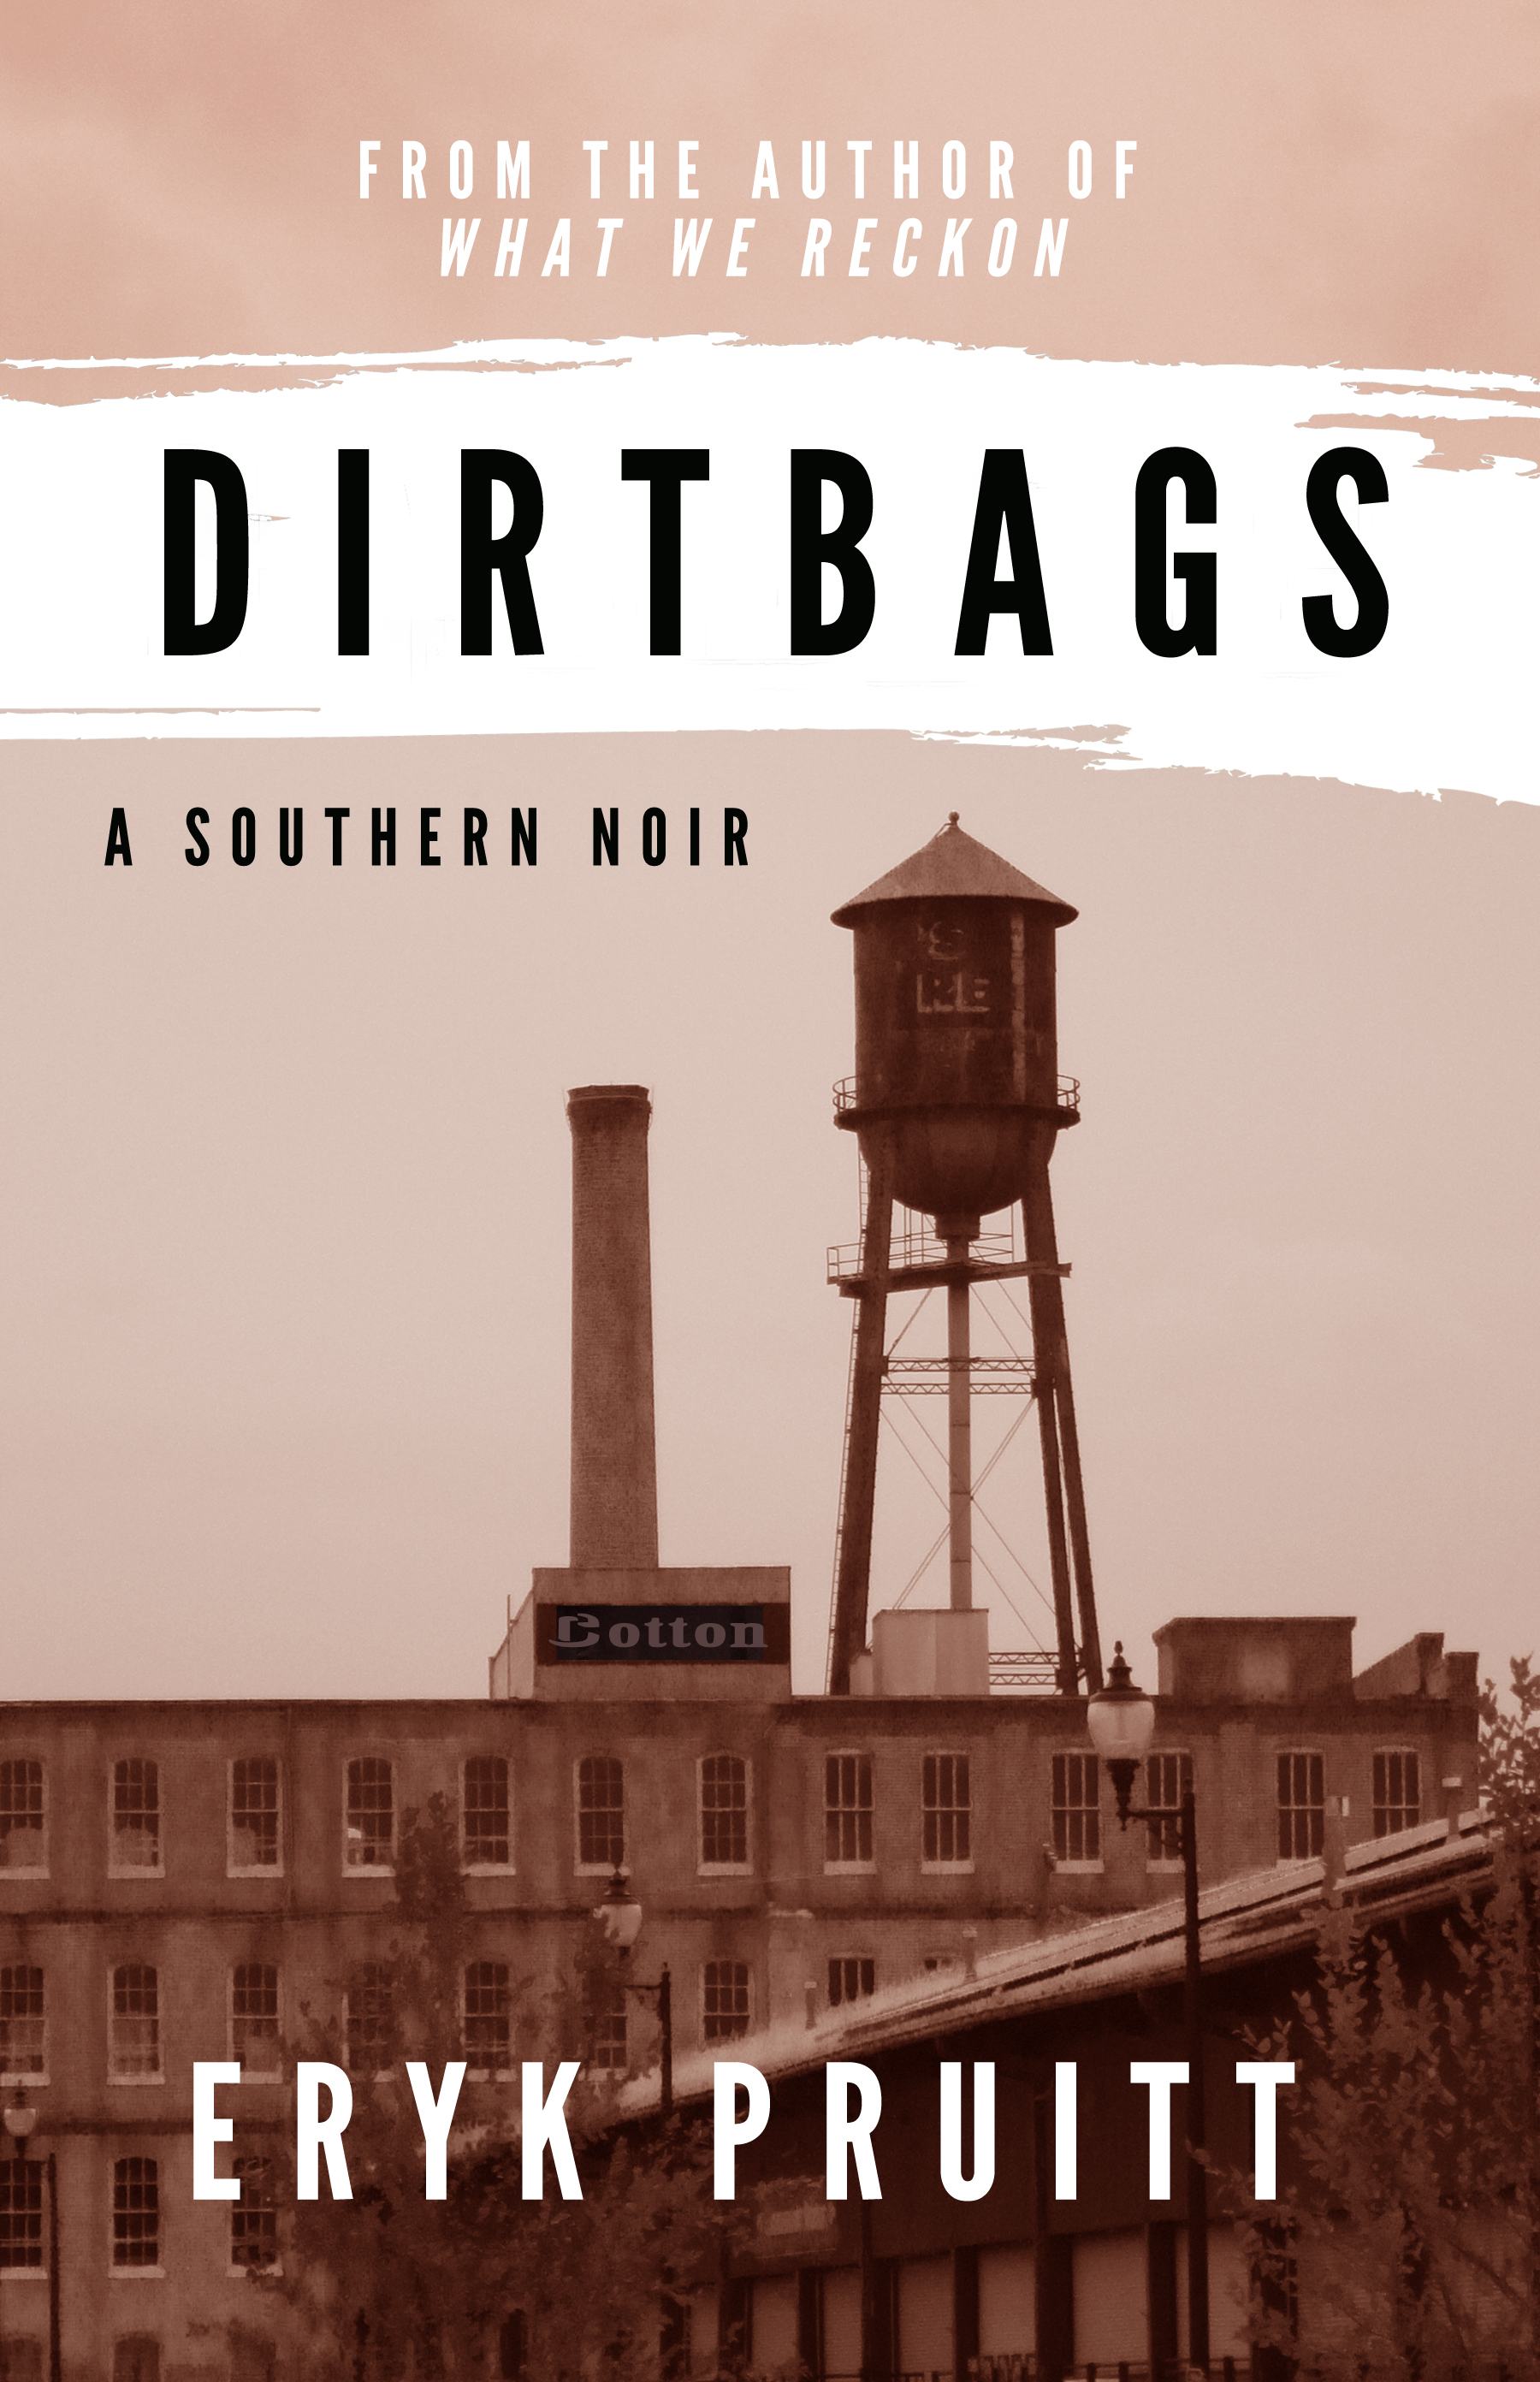 Dirtbags, the novel